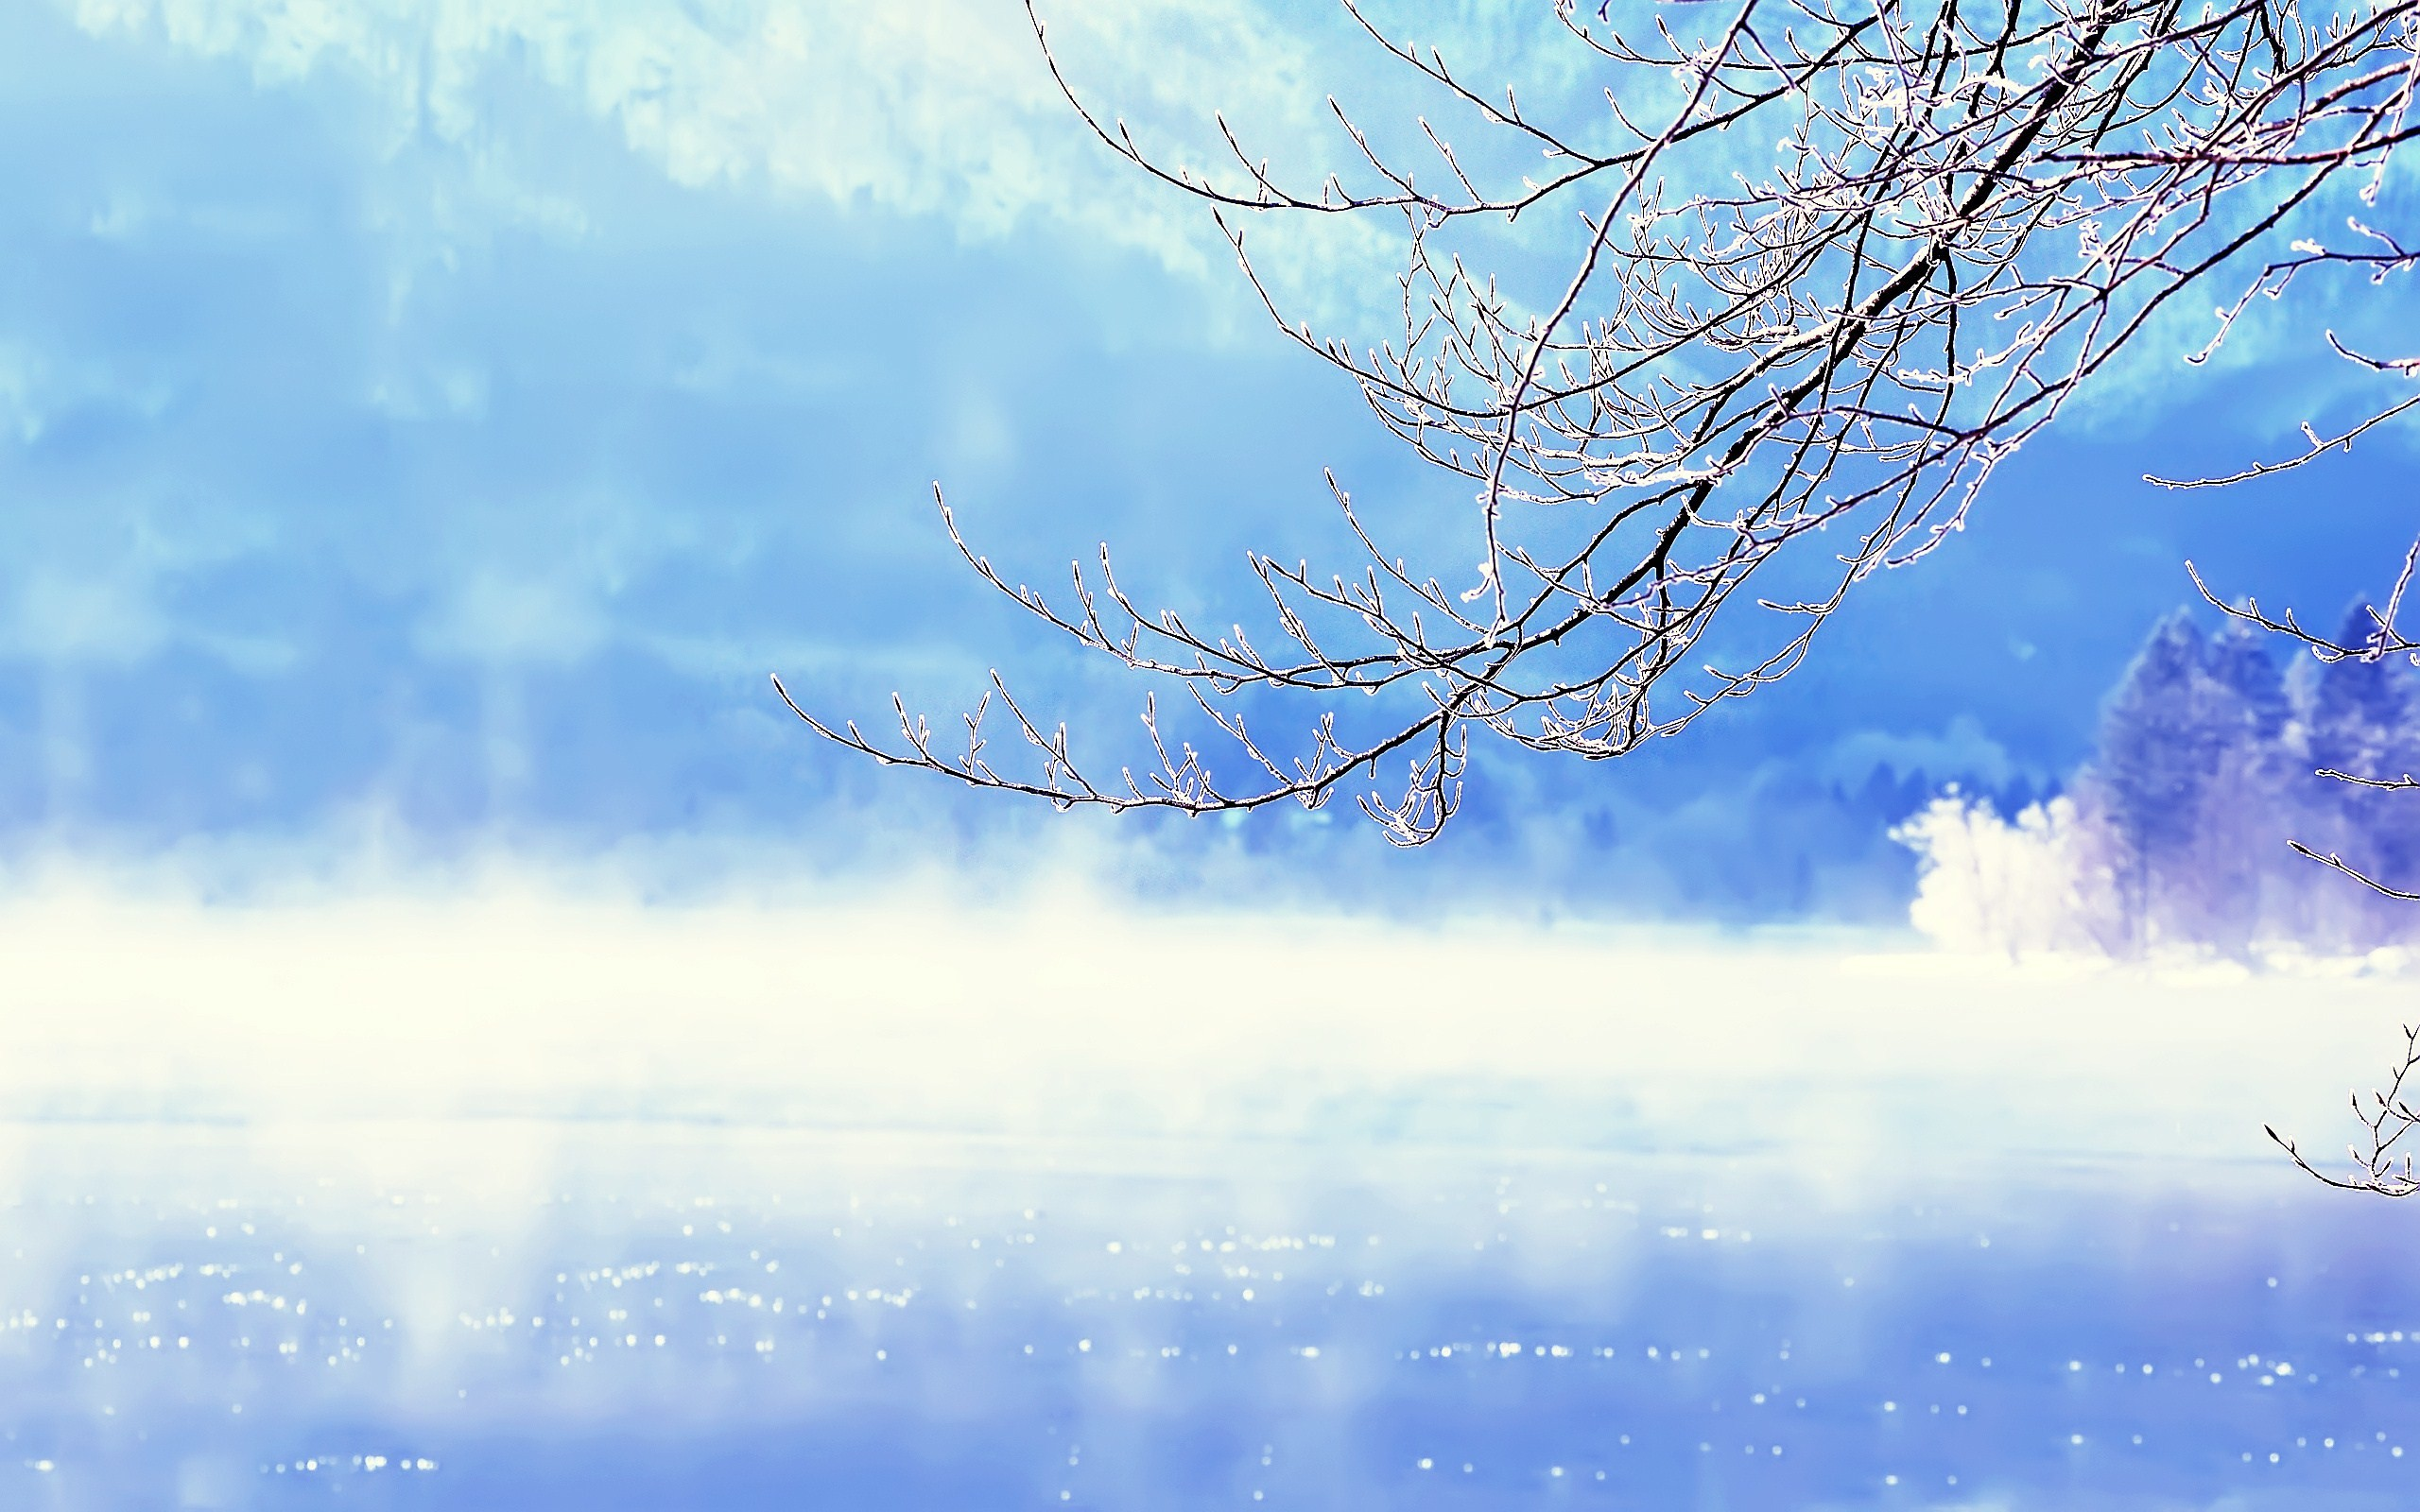 Beautiful Winter Background Wallpaper, High Definition, High Quality